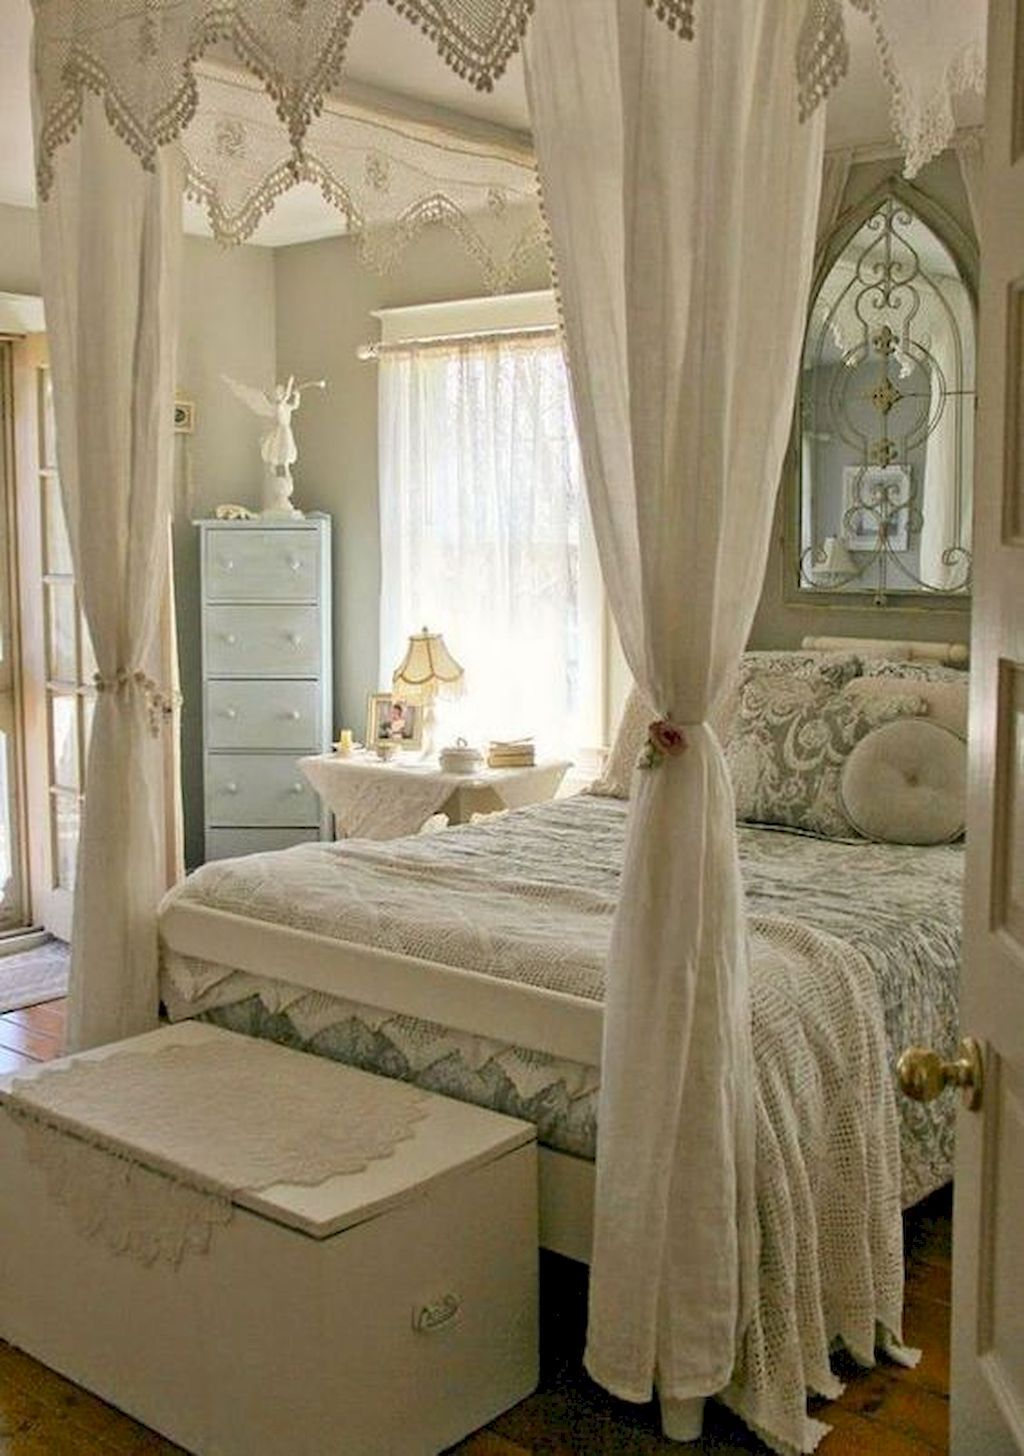 Charmant Cool 45 Stunning Shabby Chic Bedroom Decor Ideas Https://homearchite.com/